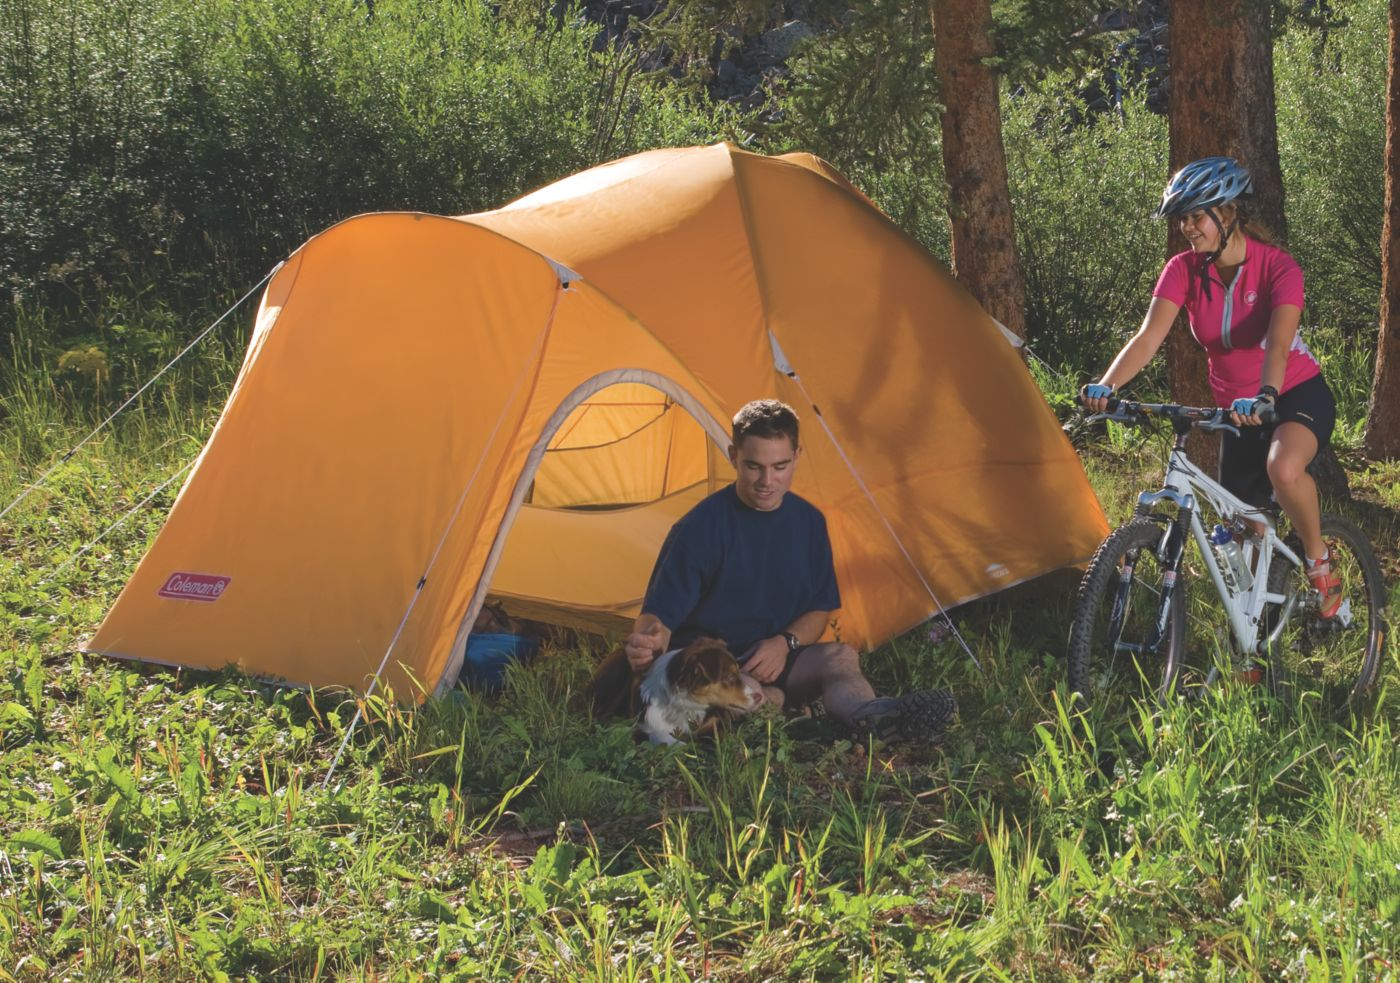 ... Backpacking Tent · Hooligan™ 3-Person Backpacking ...  sc 1 st  Coleman & Coleman Tents | Coleman Tent | Coleman